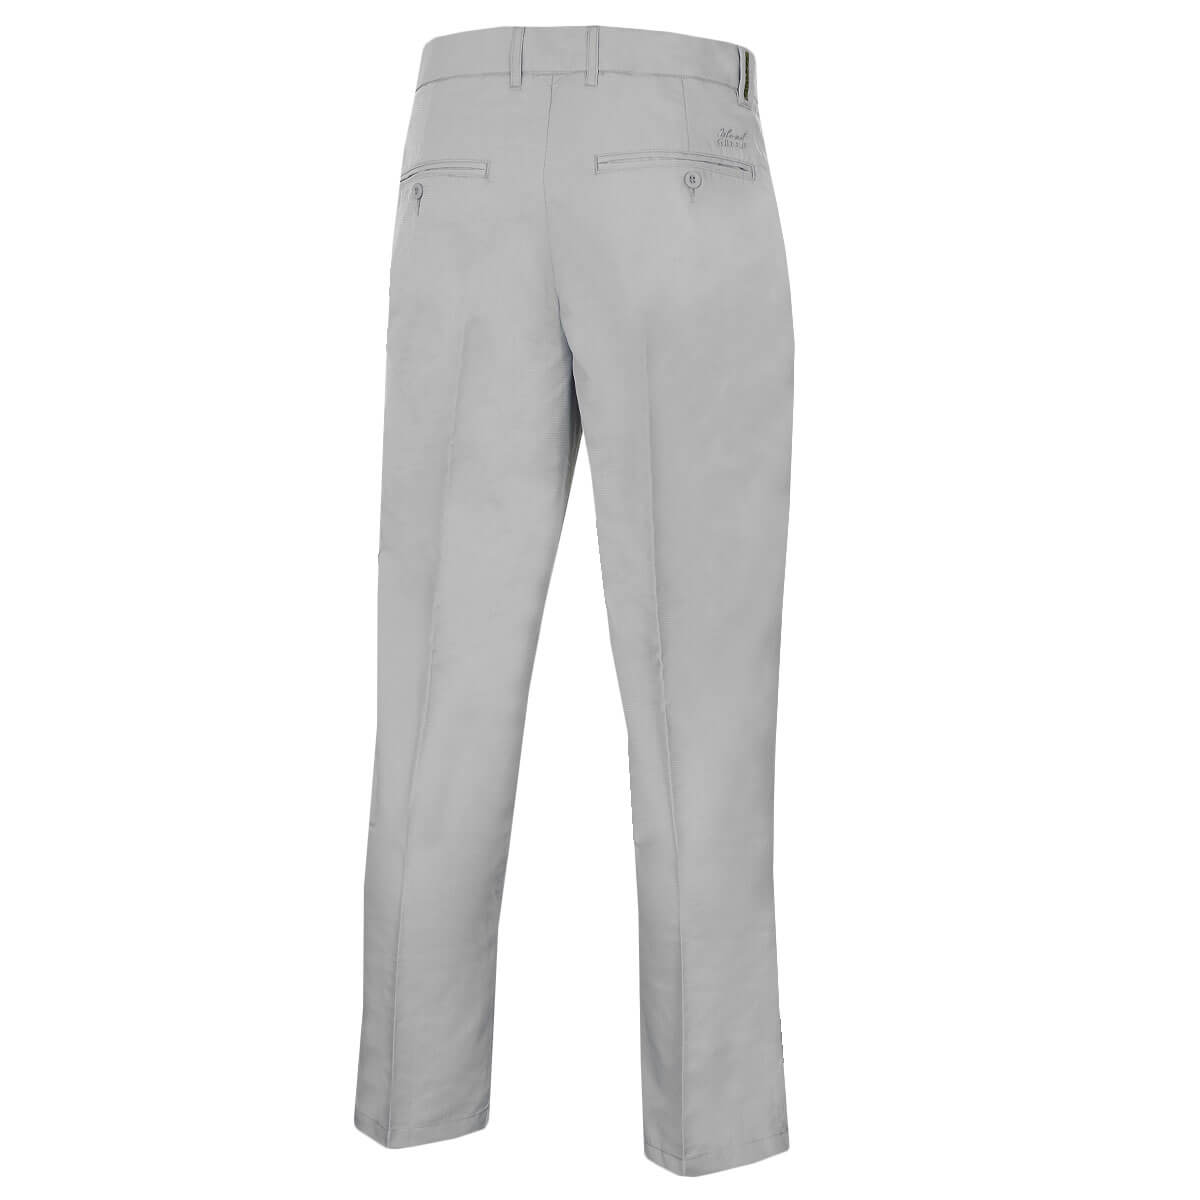 Island-Green-Breathable-Tapered-Slim-Fit-Mens-Golf-Trousers-47-OFF-RRP thumbnail 15